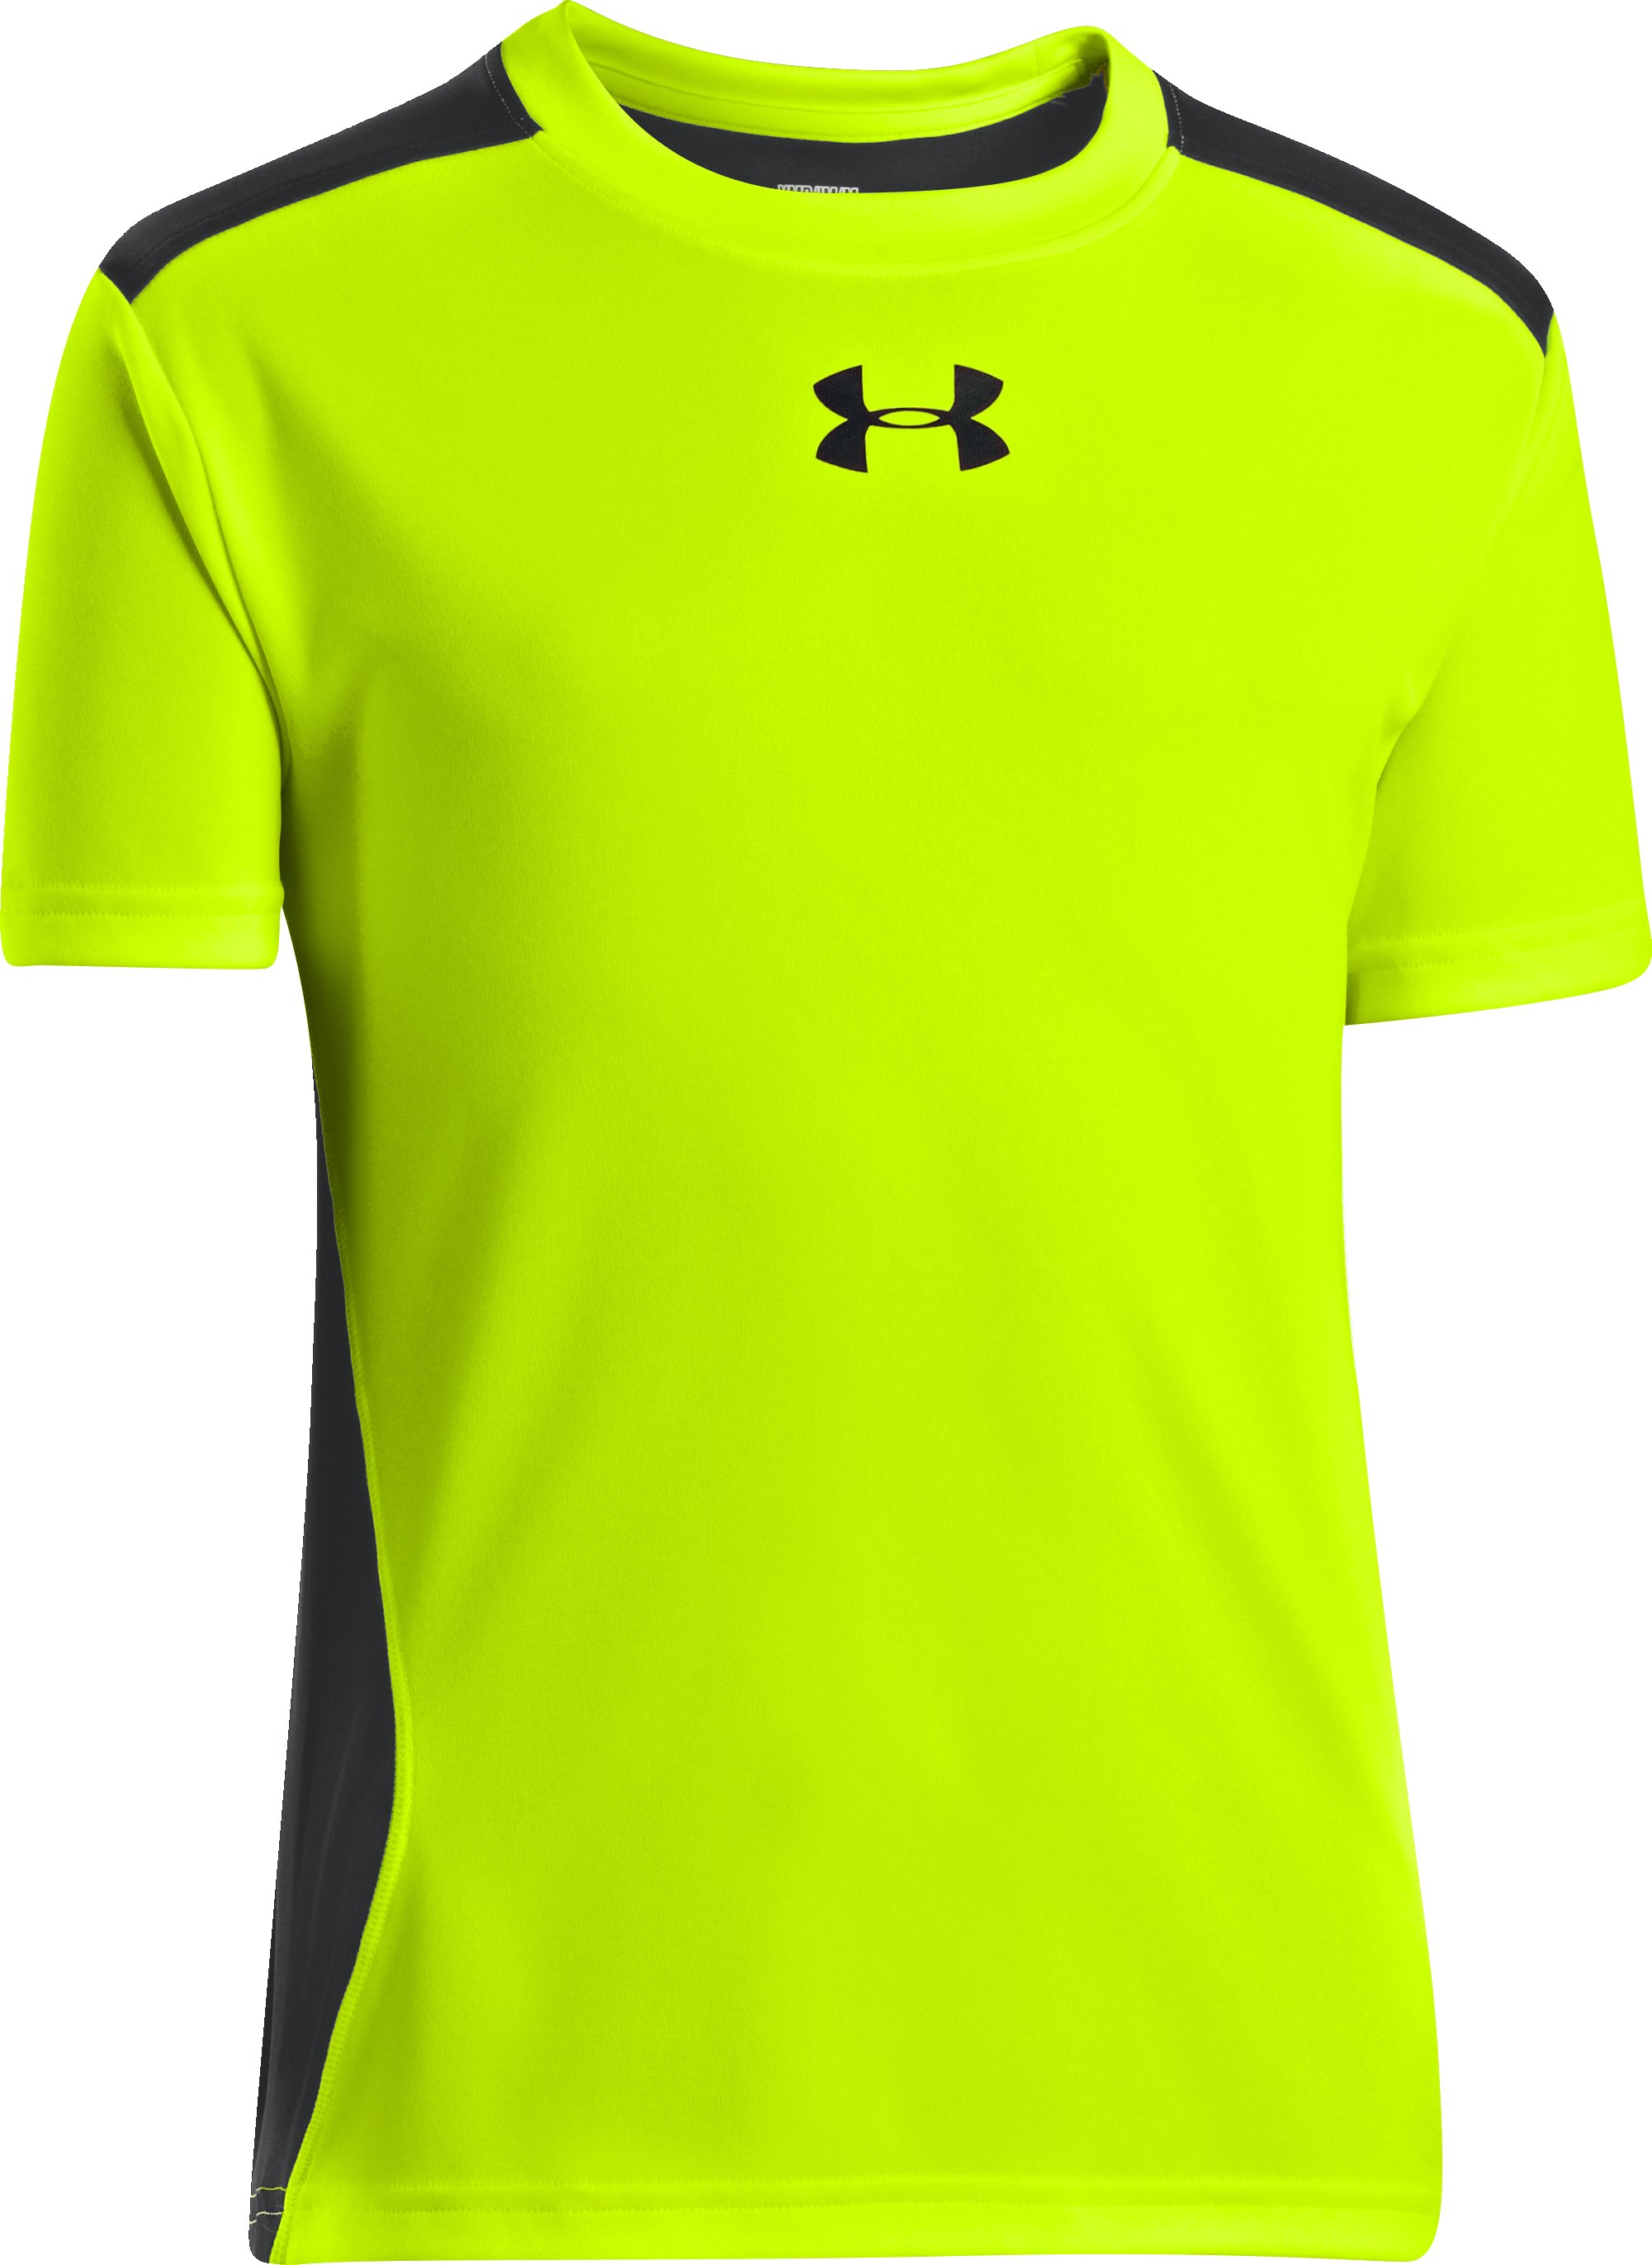 Boys' UA Show Me Sweat T-Shirt, High-Vis Yellow, undefined